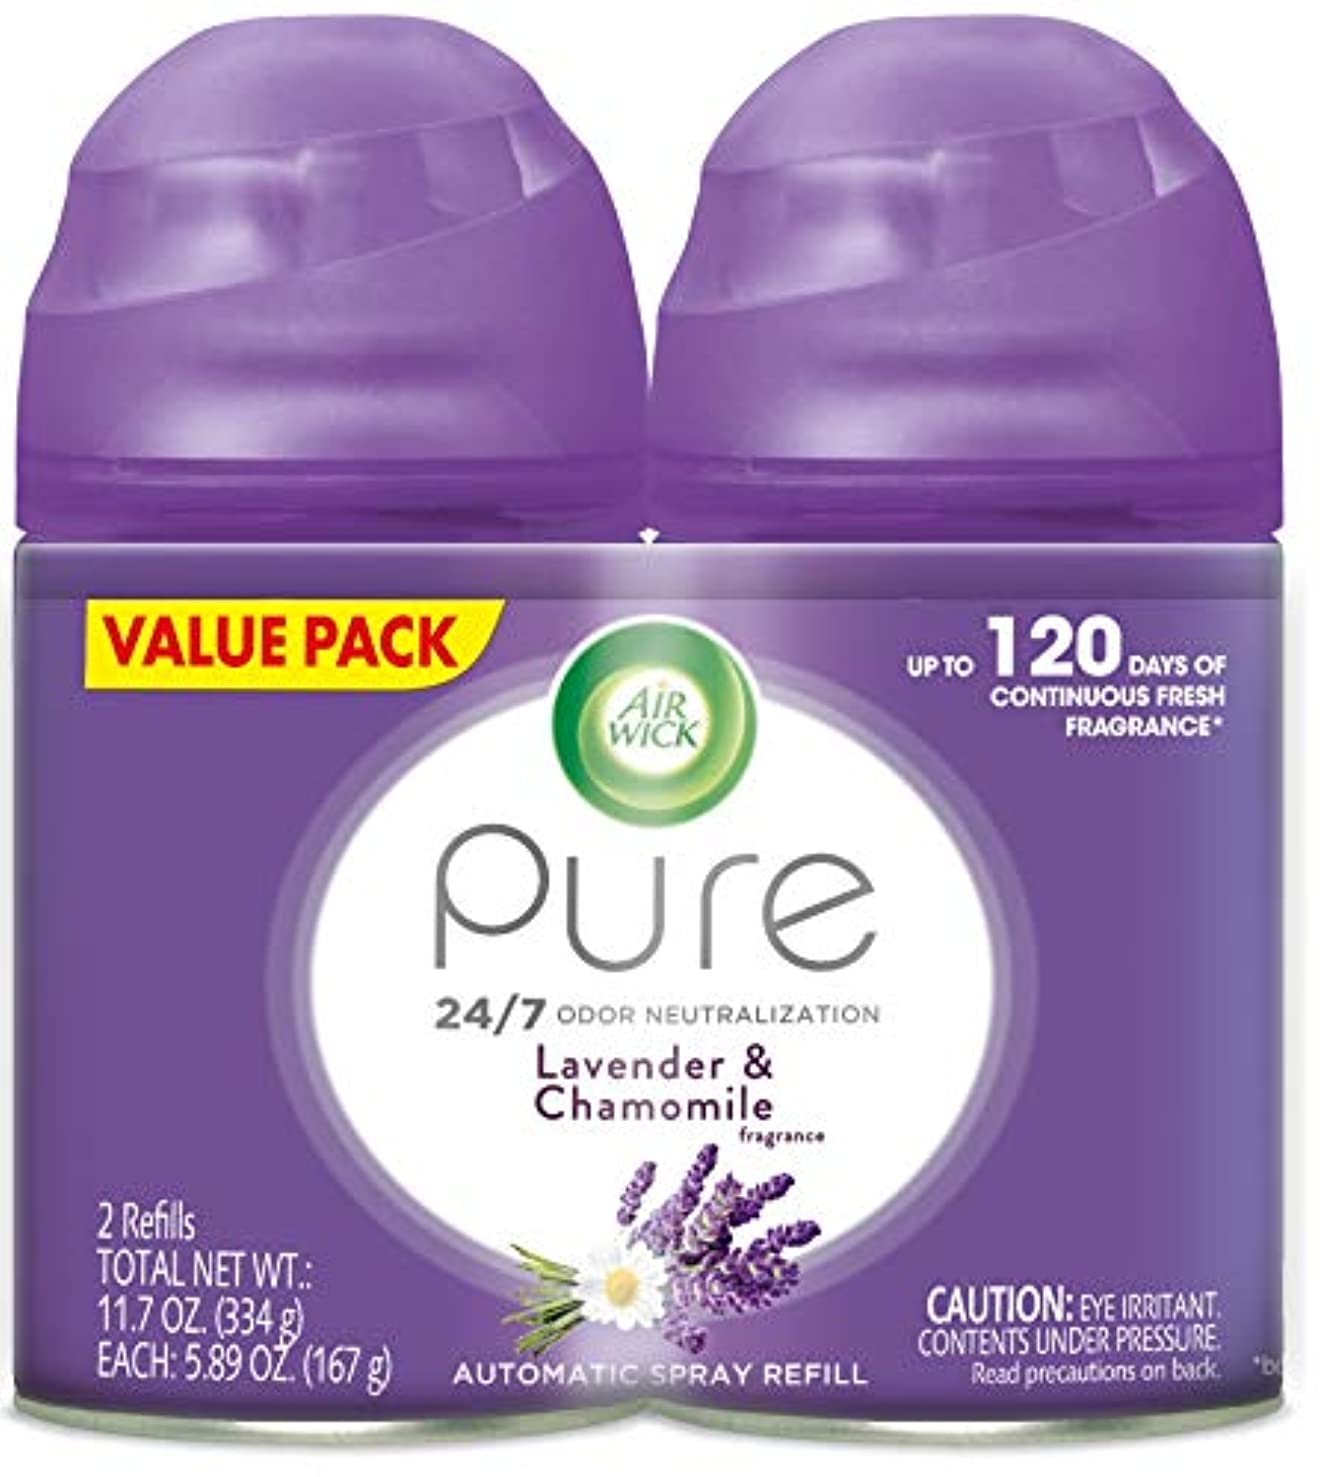 Air Wick Pure Freshmatic 2 Refills Automatic Spray, Lavender & Chamomile, (2x5.89oz), Air Freshener, Essential Oil, Odor Neutralization, Packaging May Vary